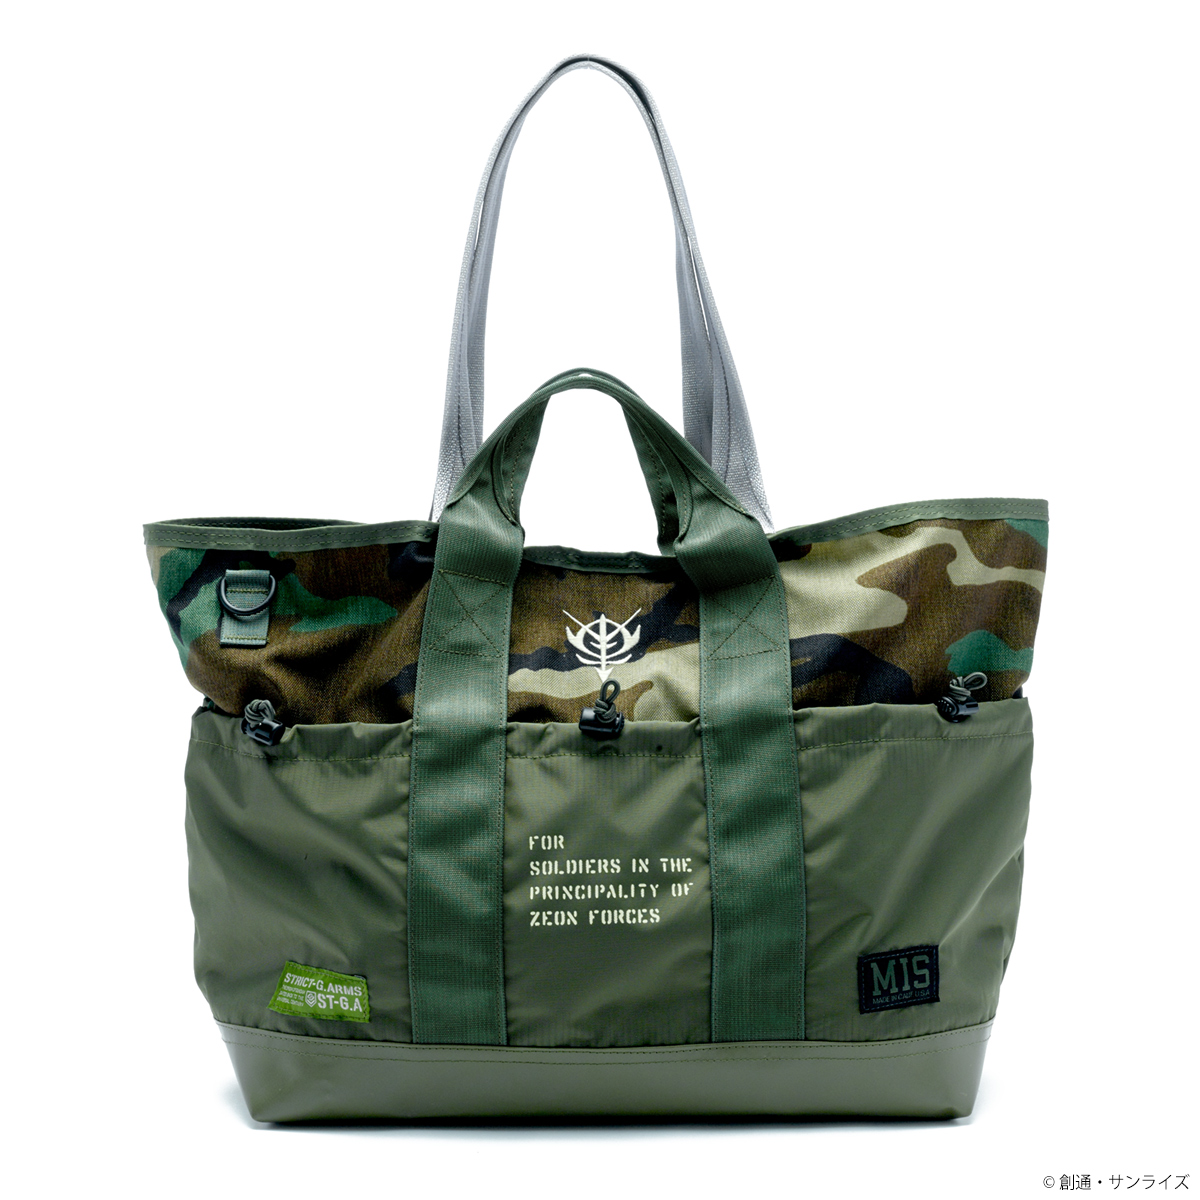 STRICT-G.ARMS M.I.S.『機動戦士ガンダム』MULTI POCKET TOTE  ZEON FORCES